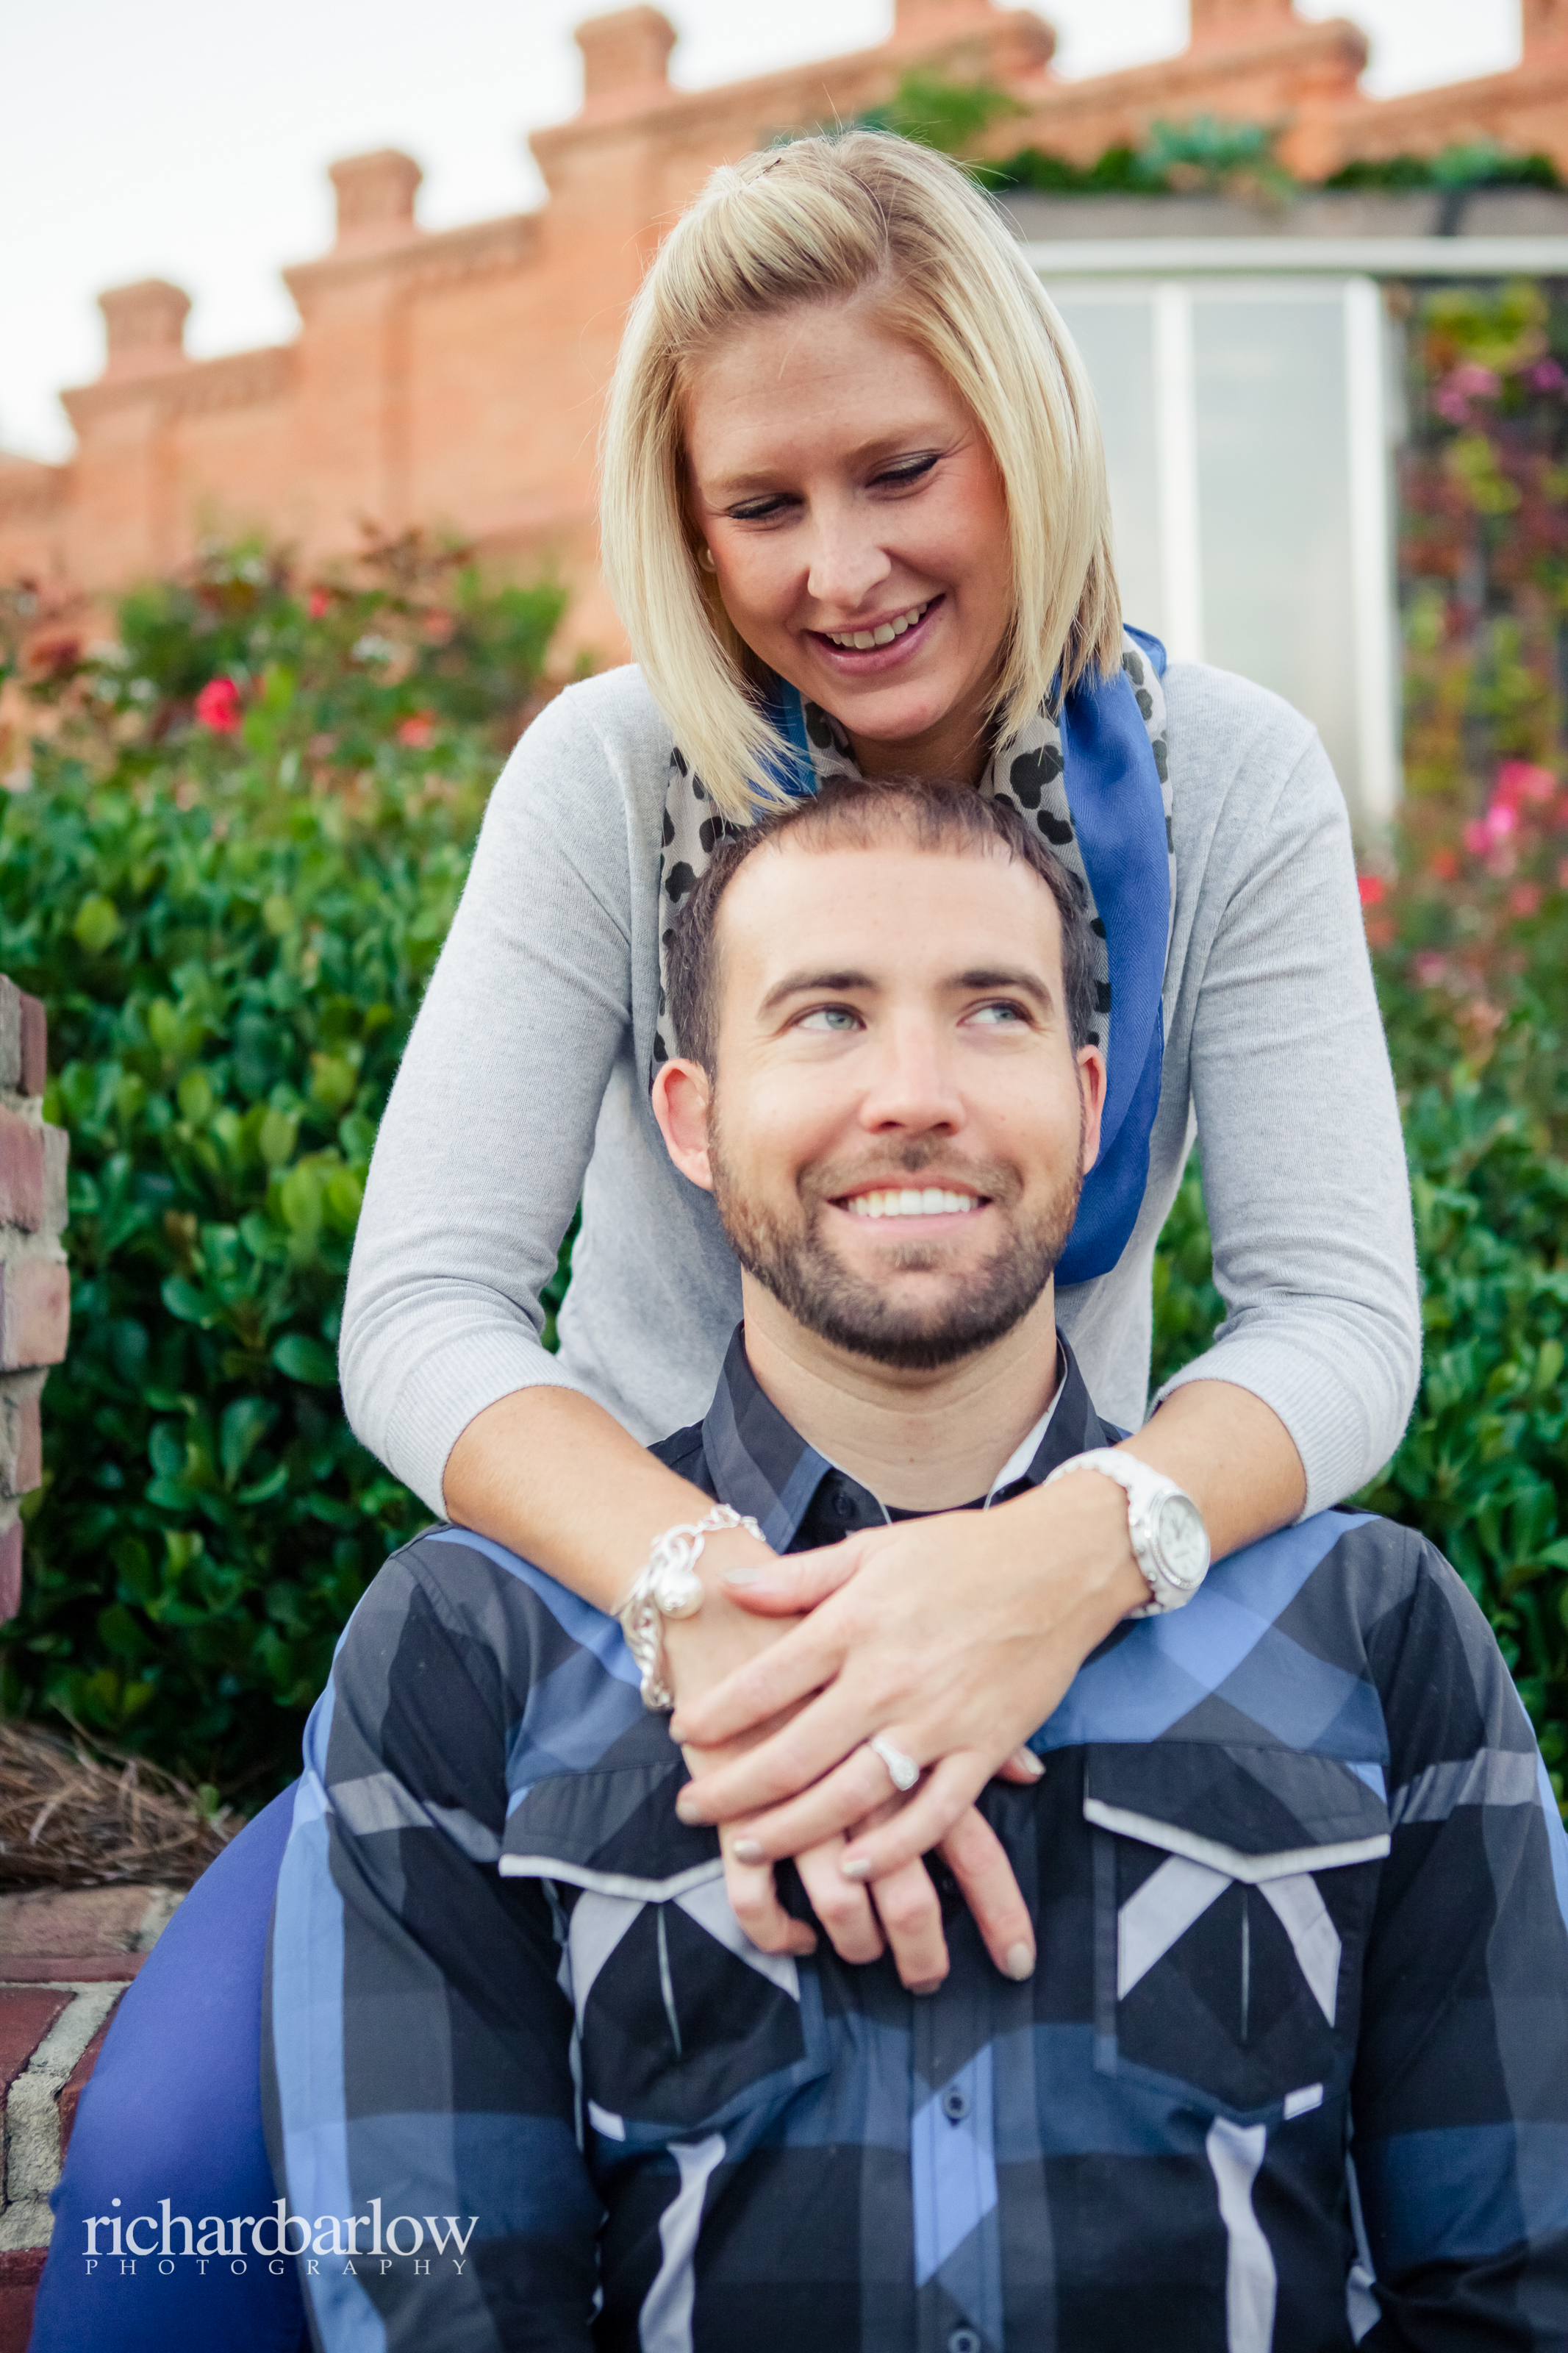 richard barlow photography - Mike and Renee Engagement Session NC-19.jpg